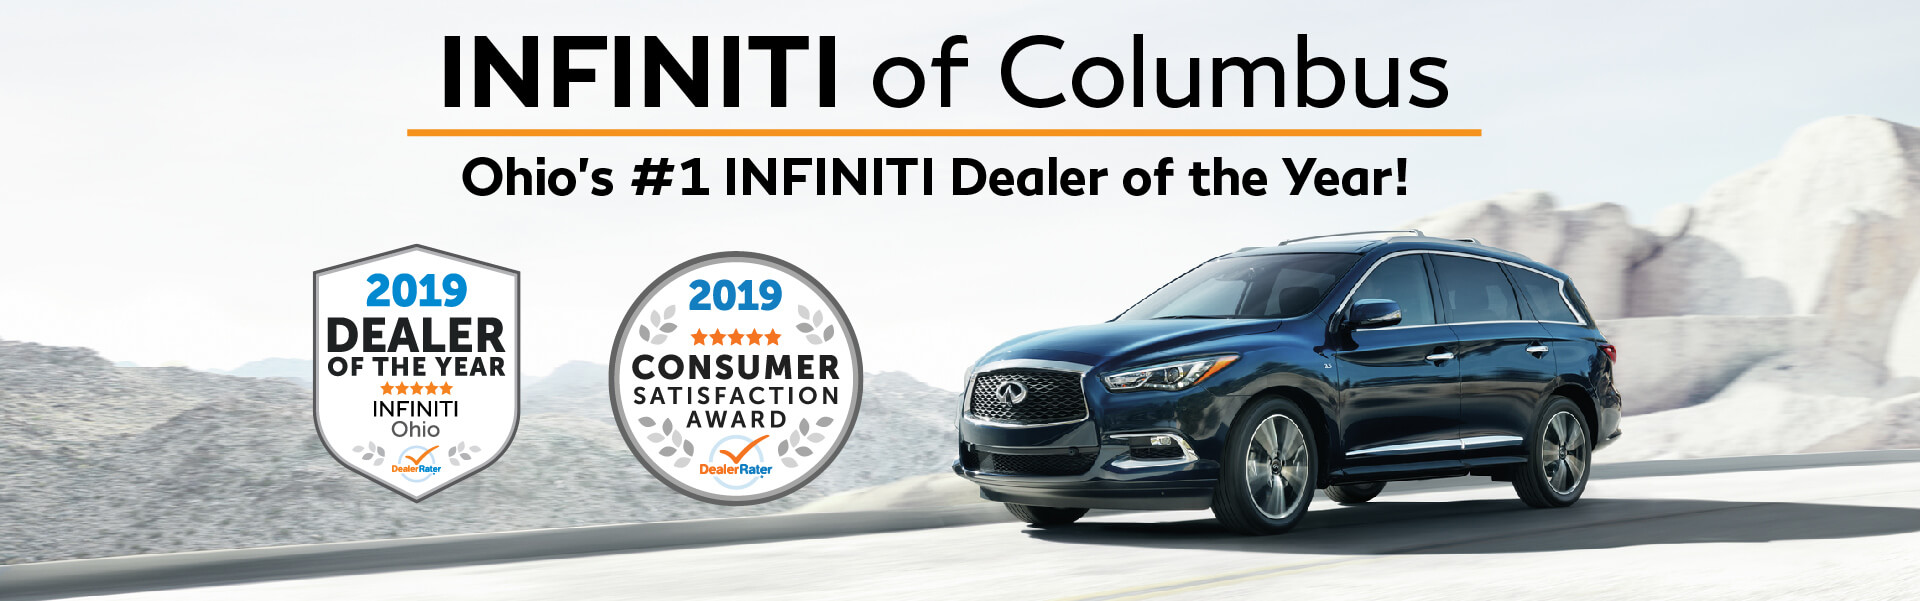 INFINITI of Columbus Dealer of the Year